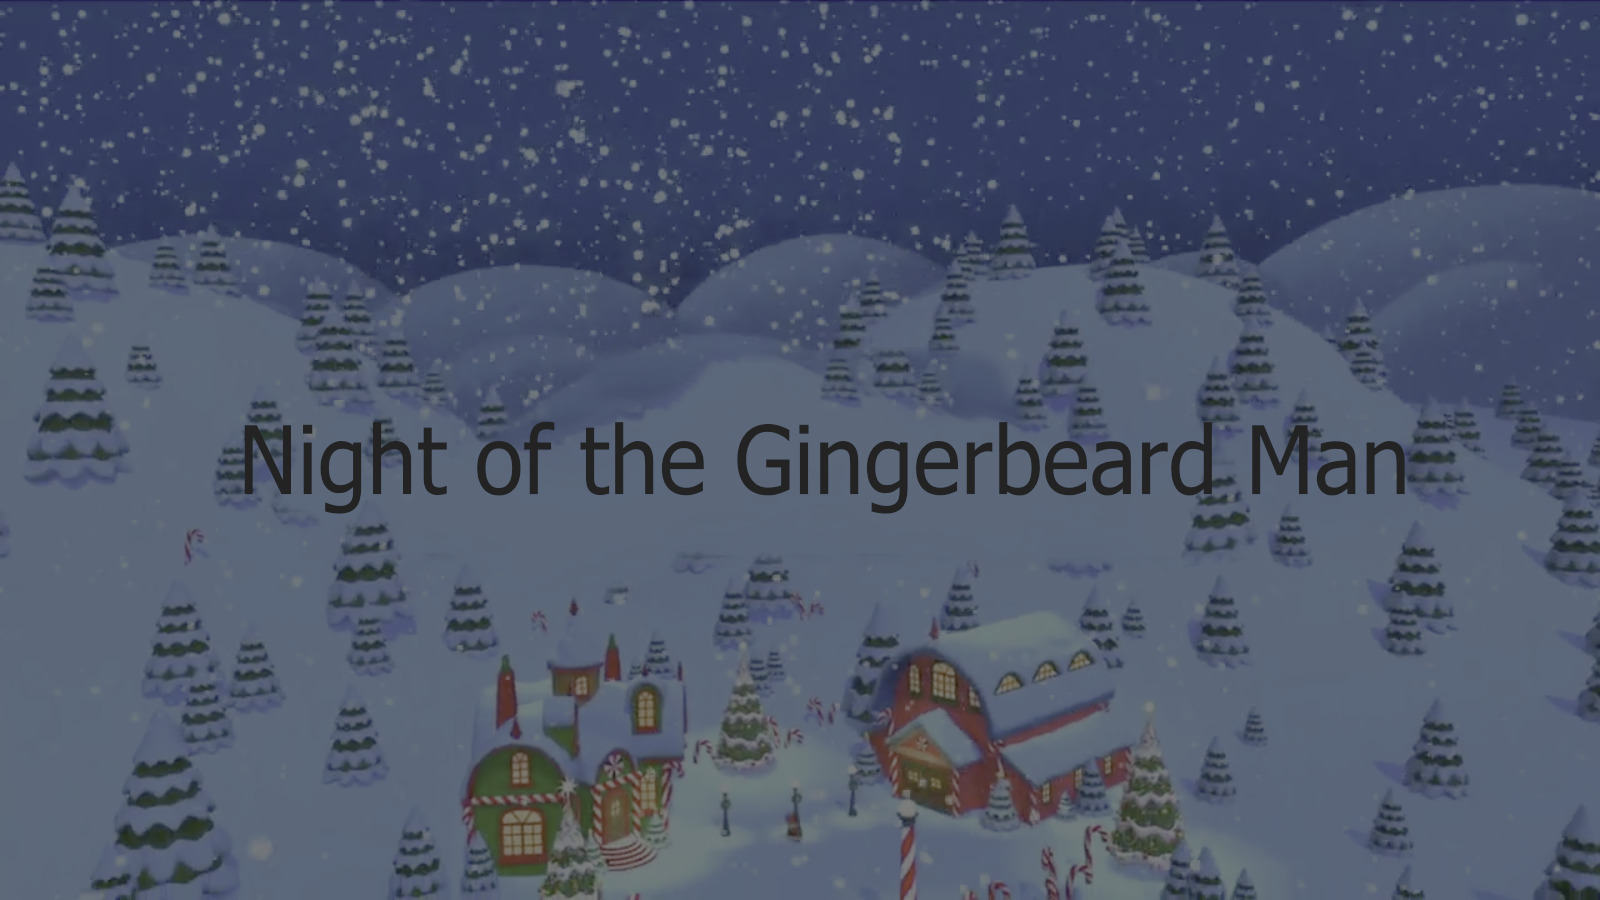 Handy Manny: Night of the Gingerbread Man